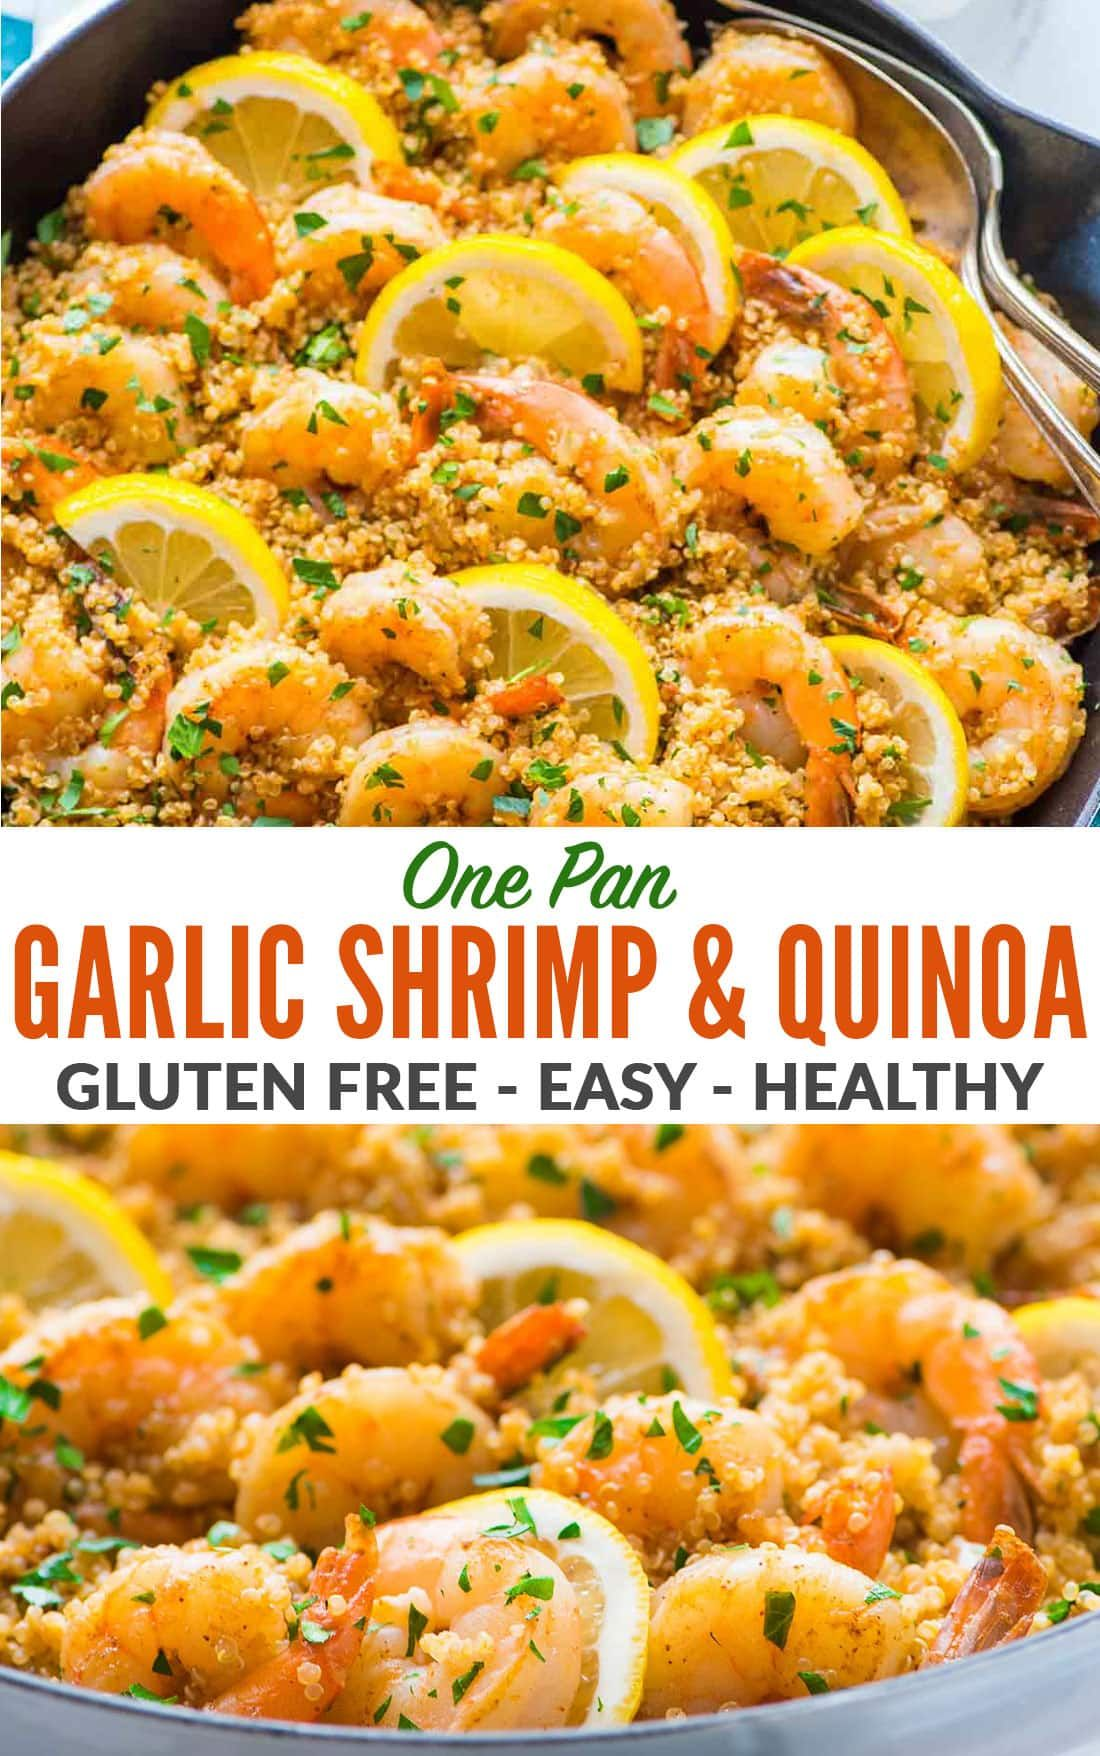 Garlic Shrimp with Quinoa—Easy, quick, and delicious! Healthy recipe with fresh lemon and garlic. Not too spicy with lots of flavor. A one pan meal that every one loves! Gluten free and perfect for busy families. #wellplated #garlicshrimp #shrimp #onepan via @wellplated #garlicshrimprecipes